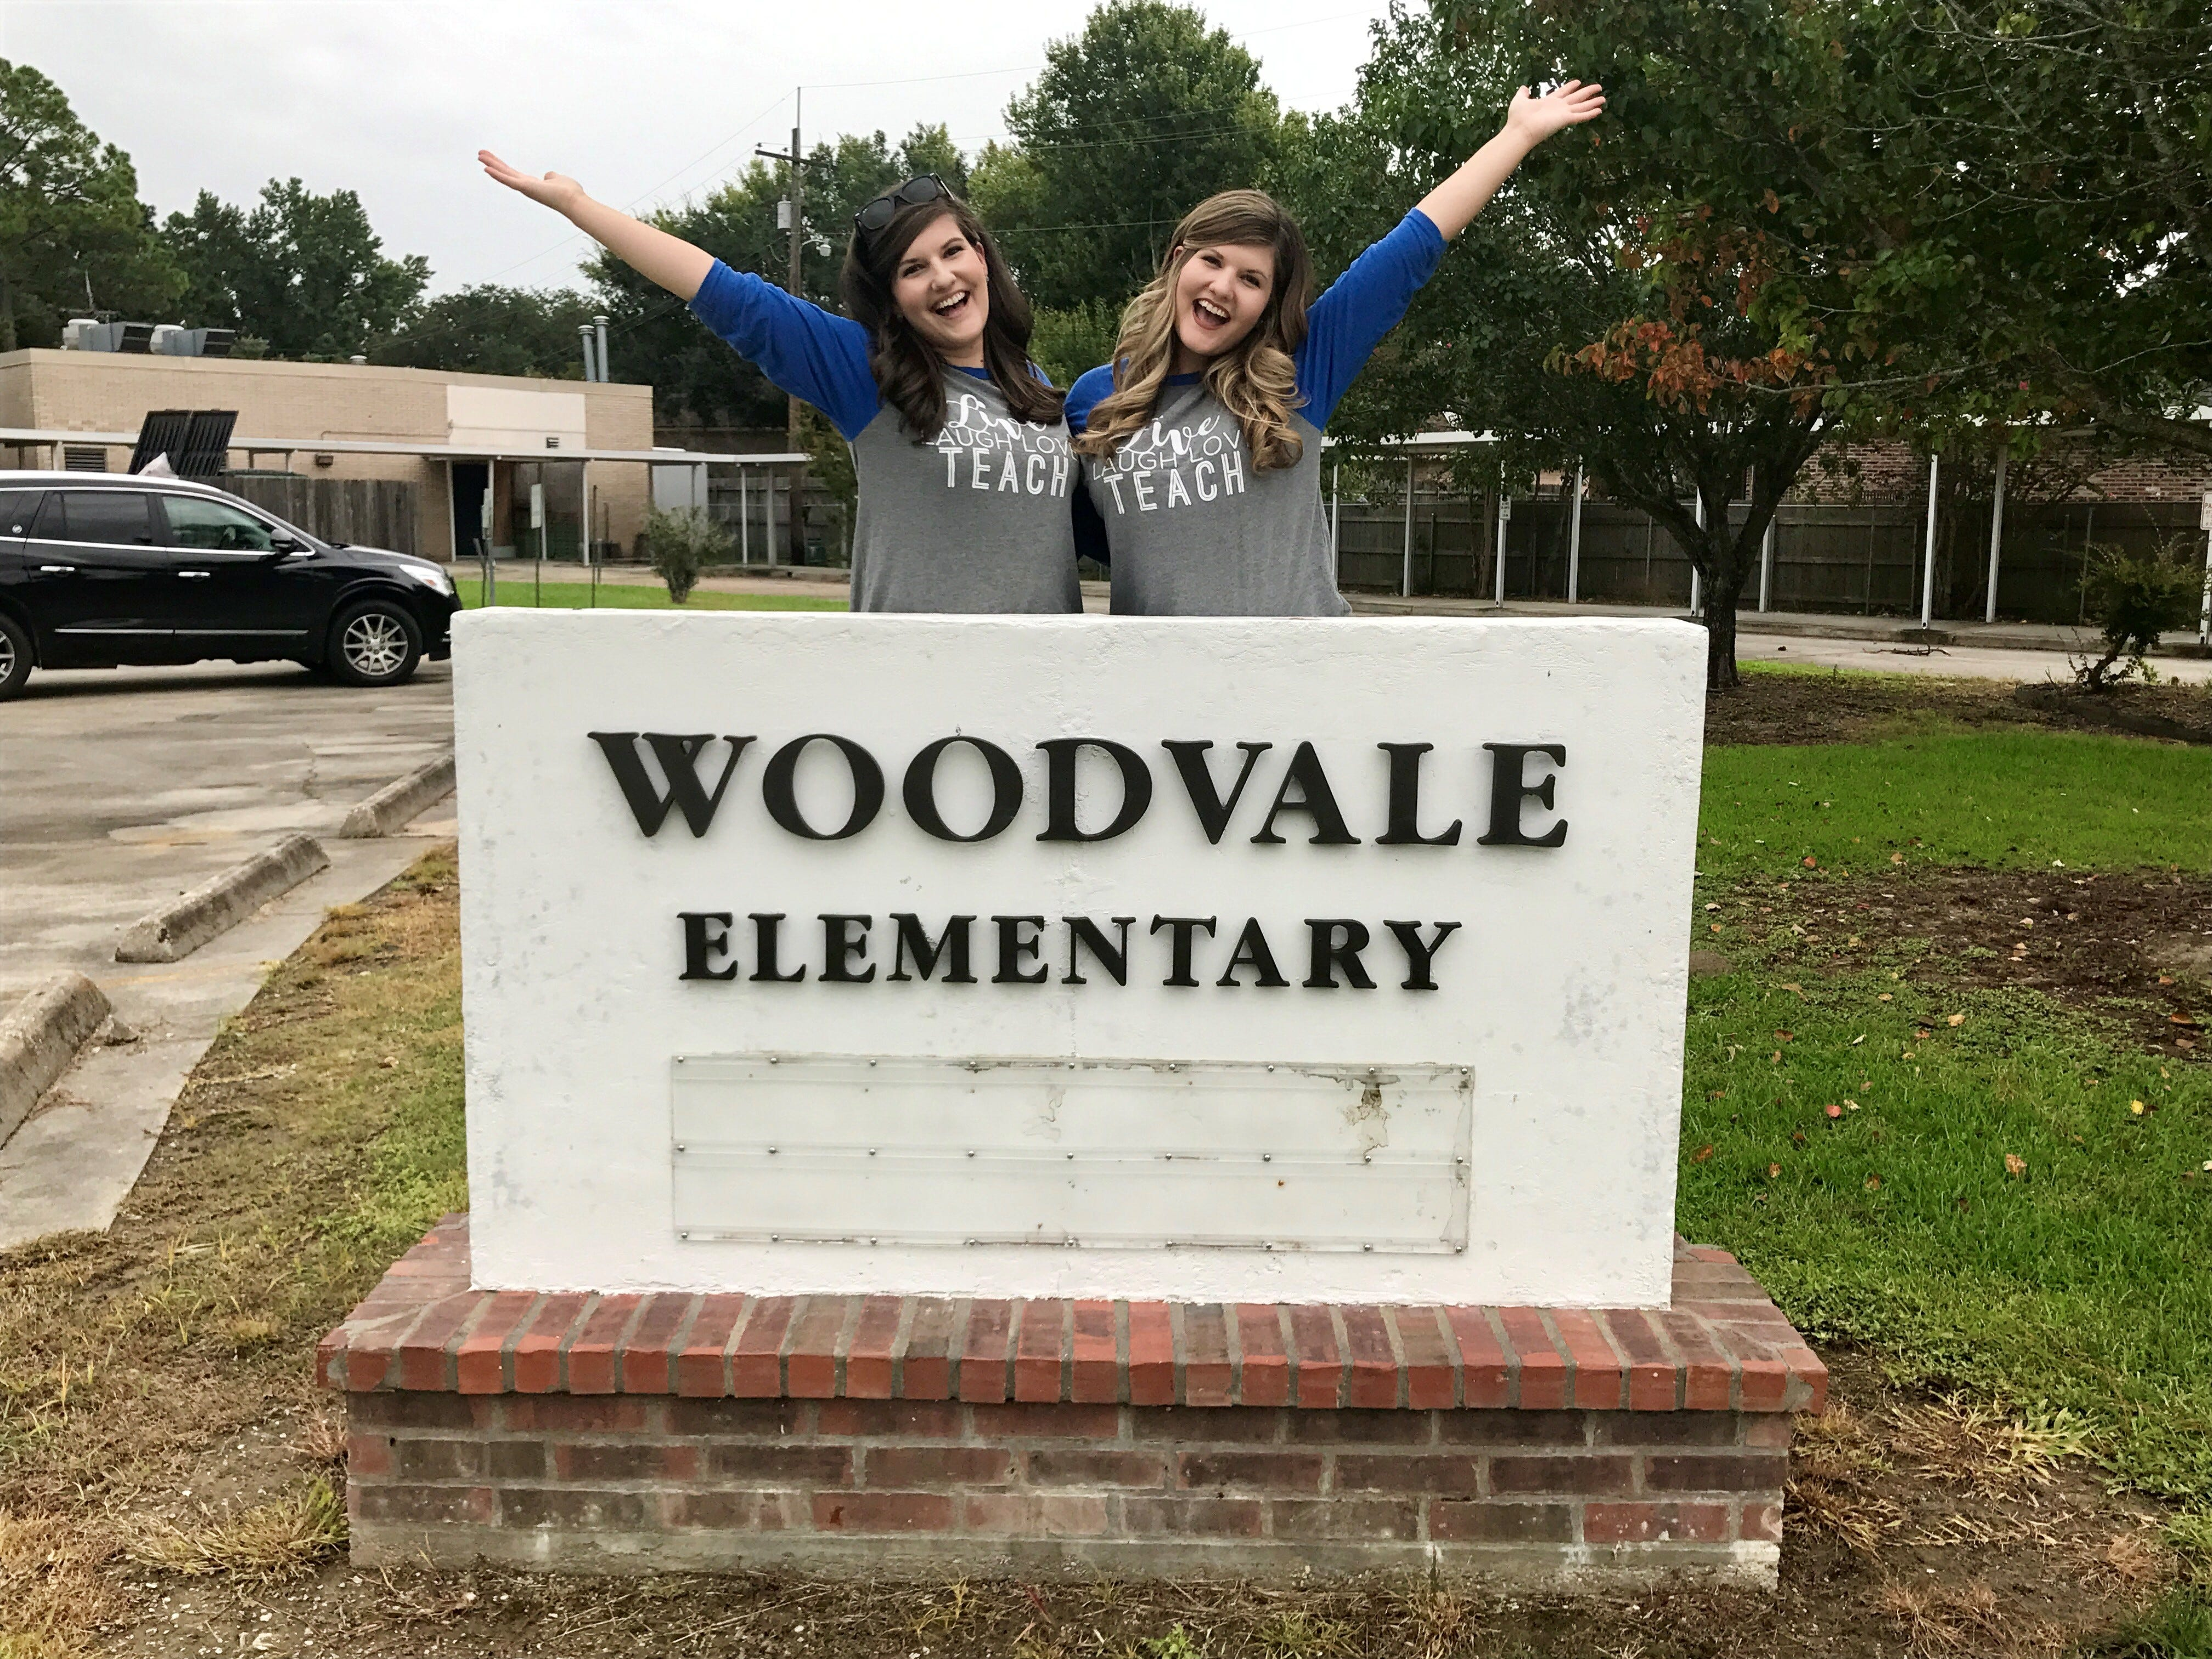 Morgan Mercado and Taylor Wallace are identical twins both teaching gifted at Woodvale Elementary School in Lafayette, Louisiana, where they once took gifted classes.